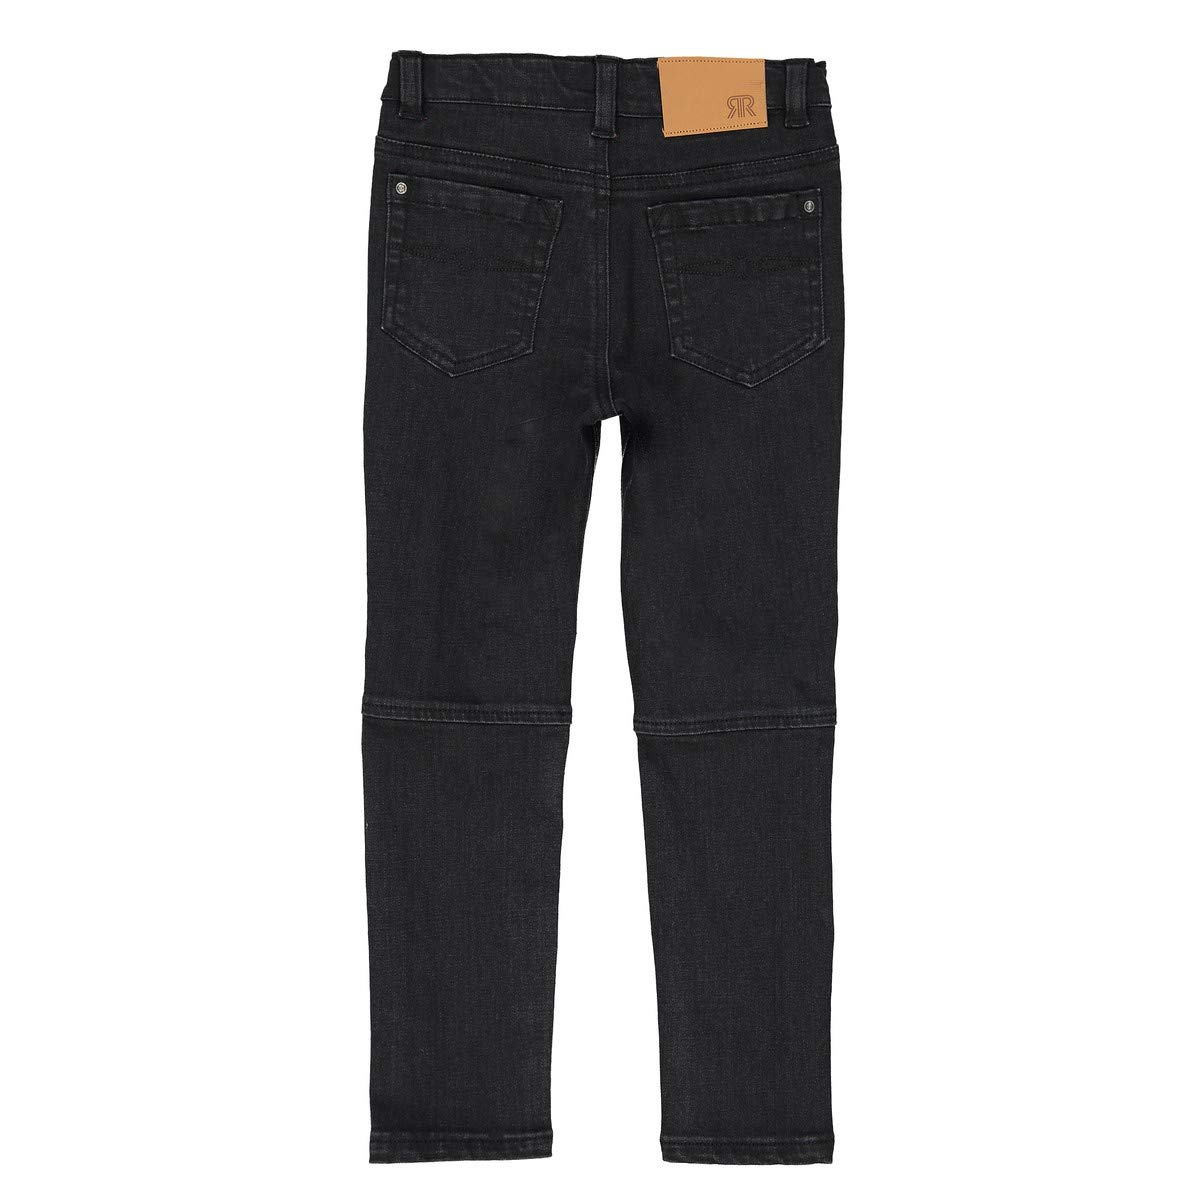 3-12 Years Black Size 6 Years 44 in. La Redoute Collections Big Boys Super Tough Slim Fit Jeans